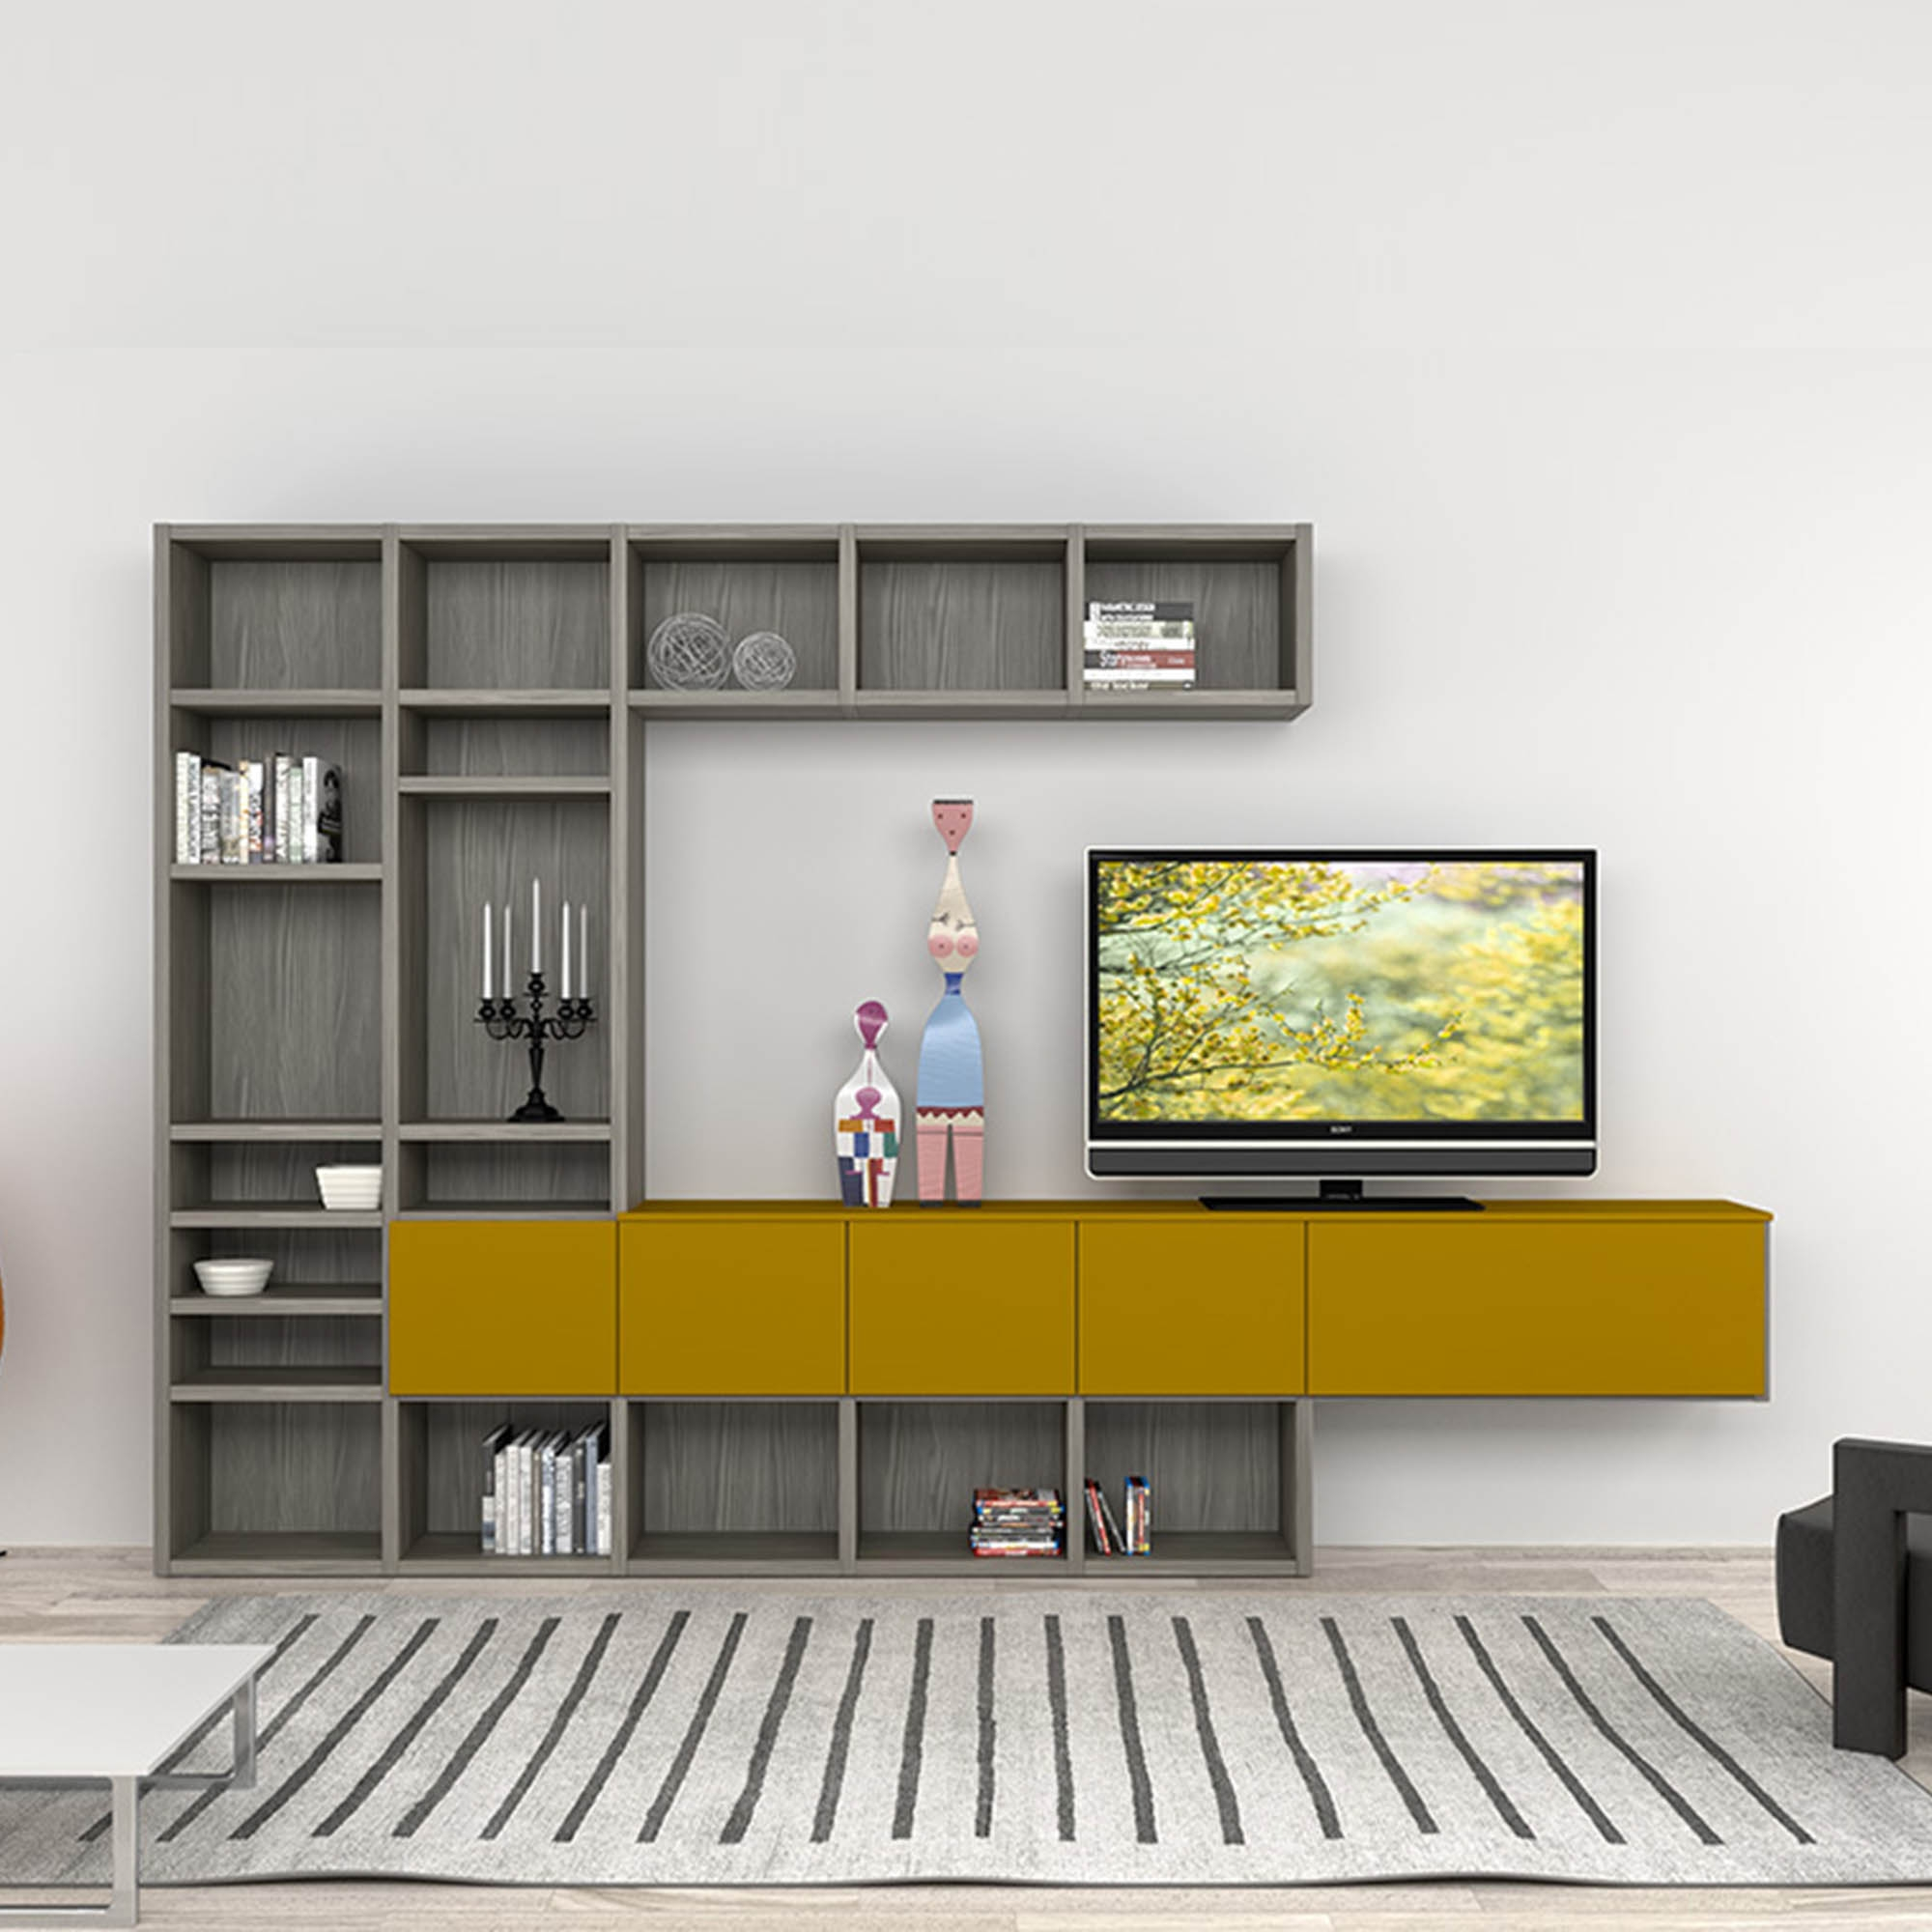 Modern Italian Tv Stand In Composition Of Grey And Mustard Colours Throughout Bespoke Tv Stand (View 3 of 15)